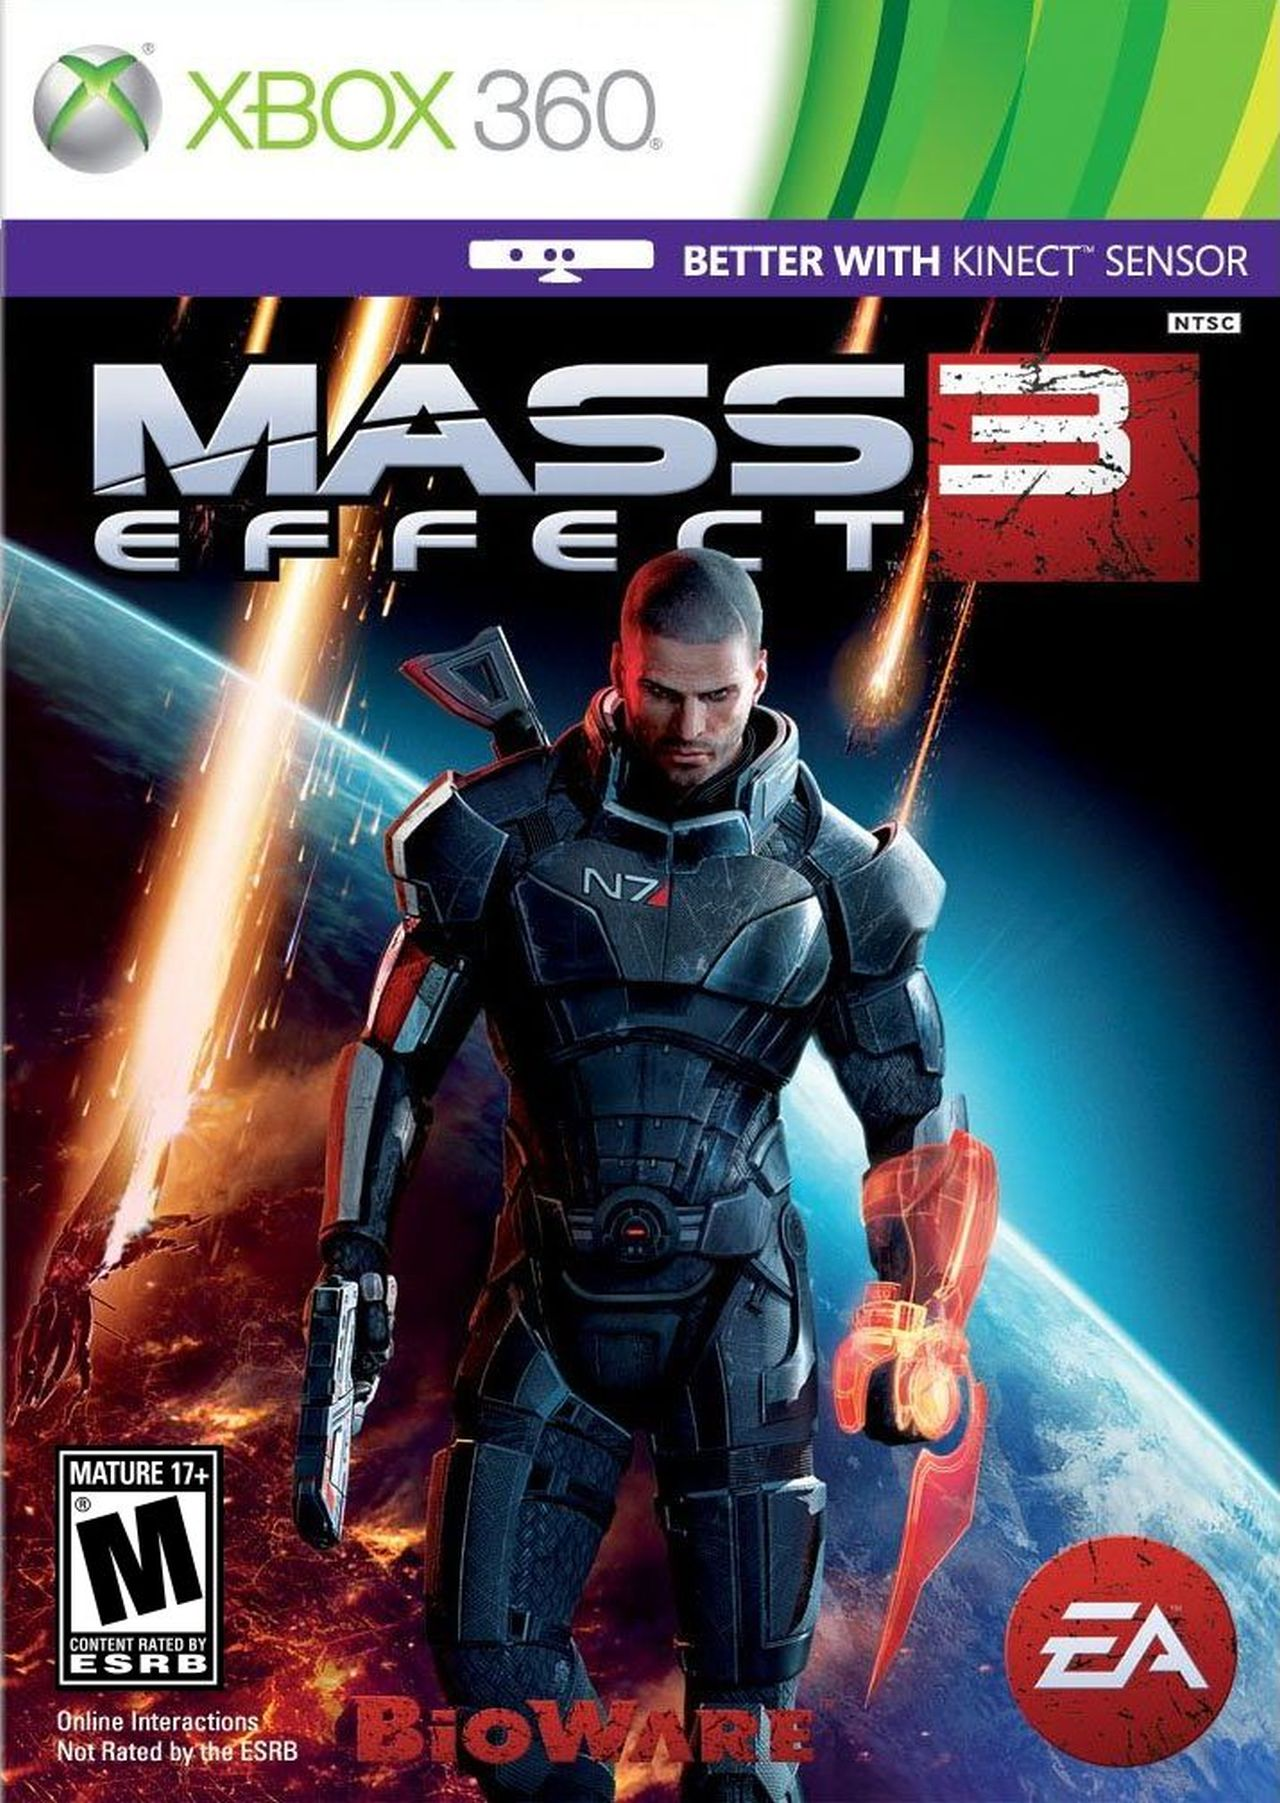 Xbox 360 Games For Xbox 1 : Mass effect xbox game